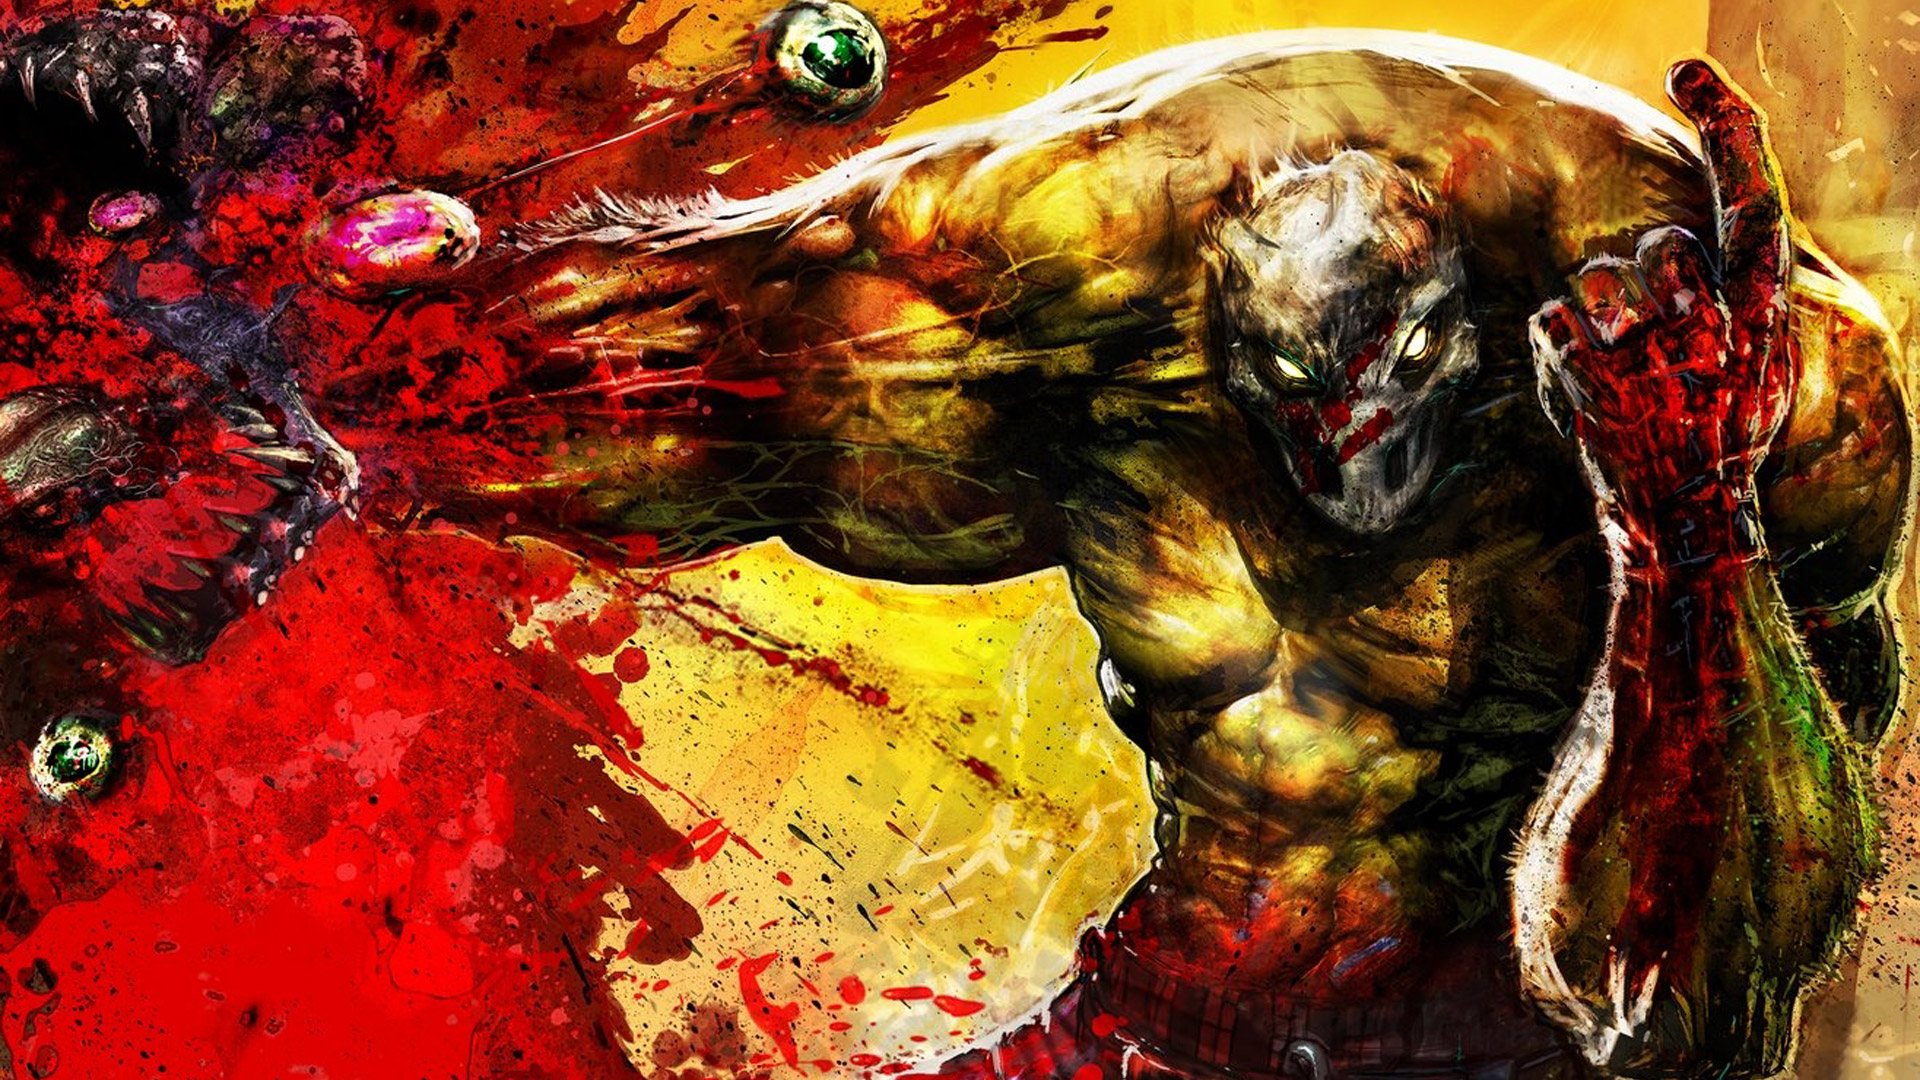 Splatterhouse Wallpaper in 1920x1080